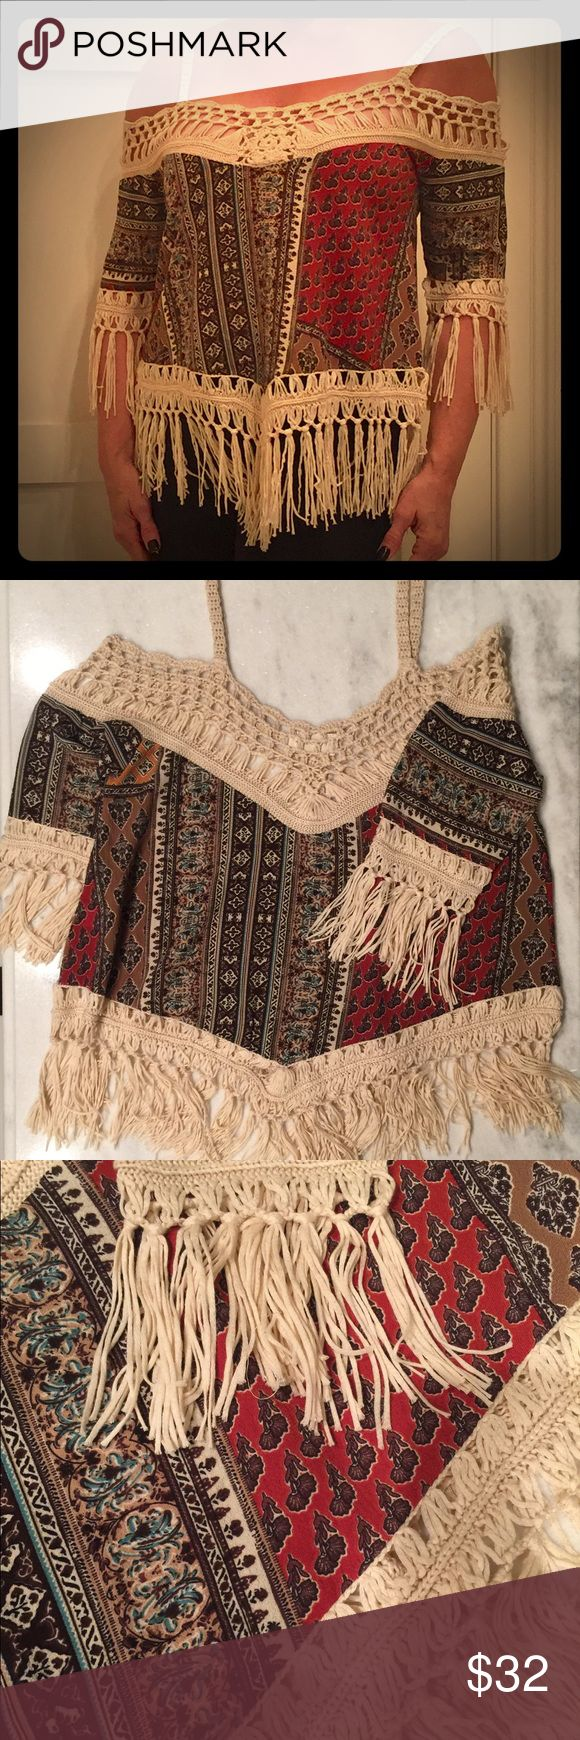 Dreamers Boho fringe top Boho off the shoulder top with straps. Soft cotton/acrylic print fabric with ivory fringe. Size medium but fits like a large. Occasion Tops Blouses